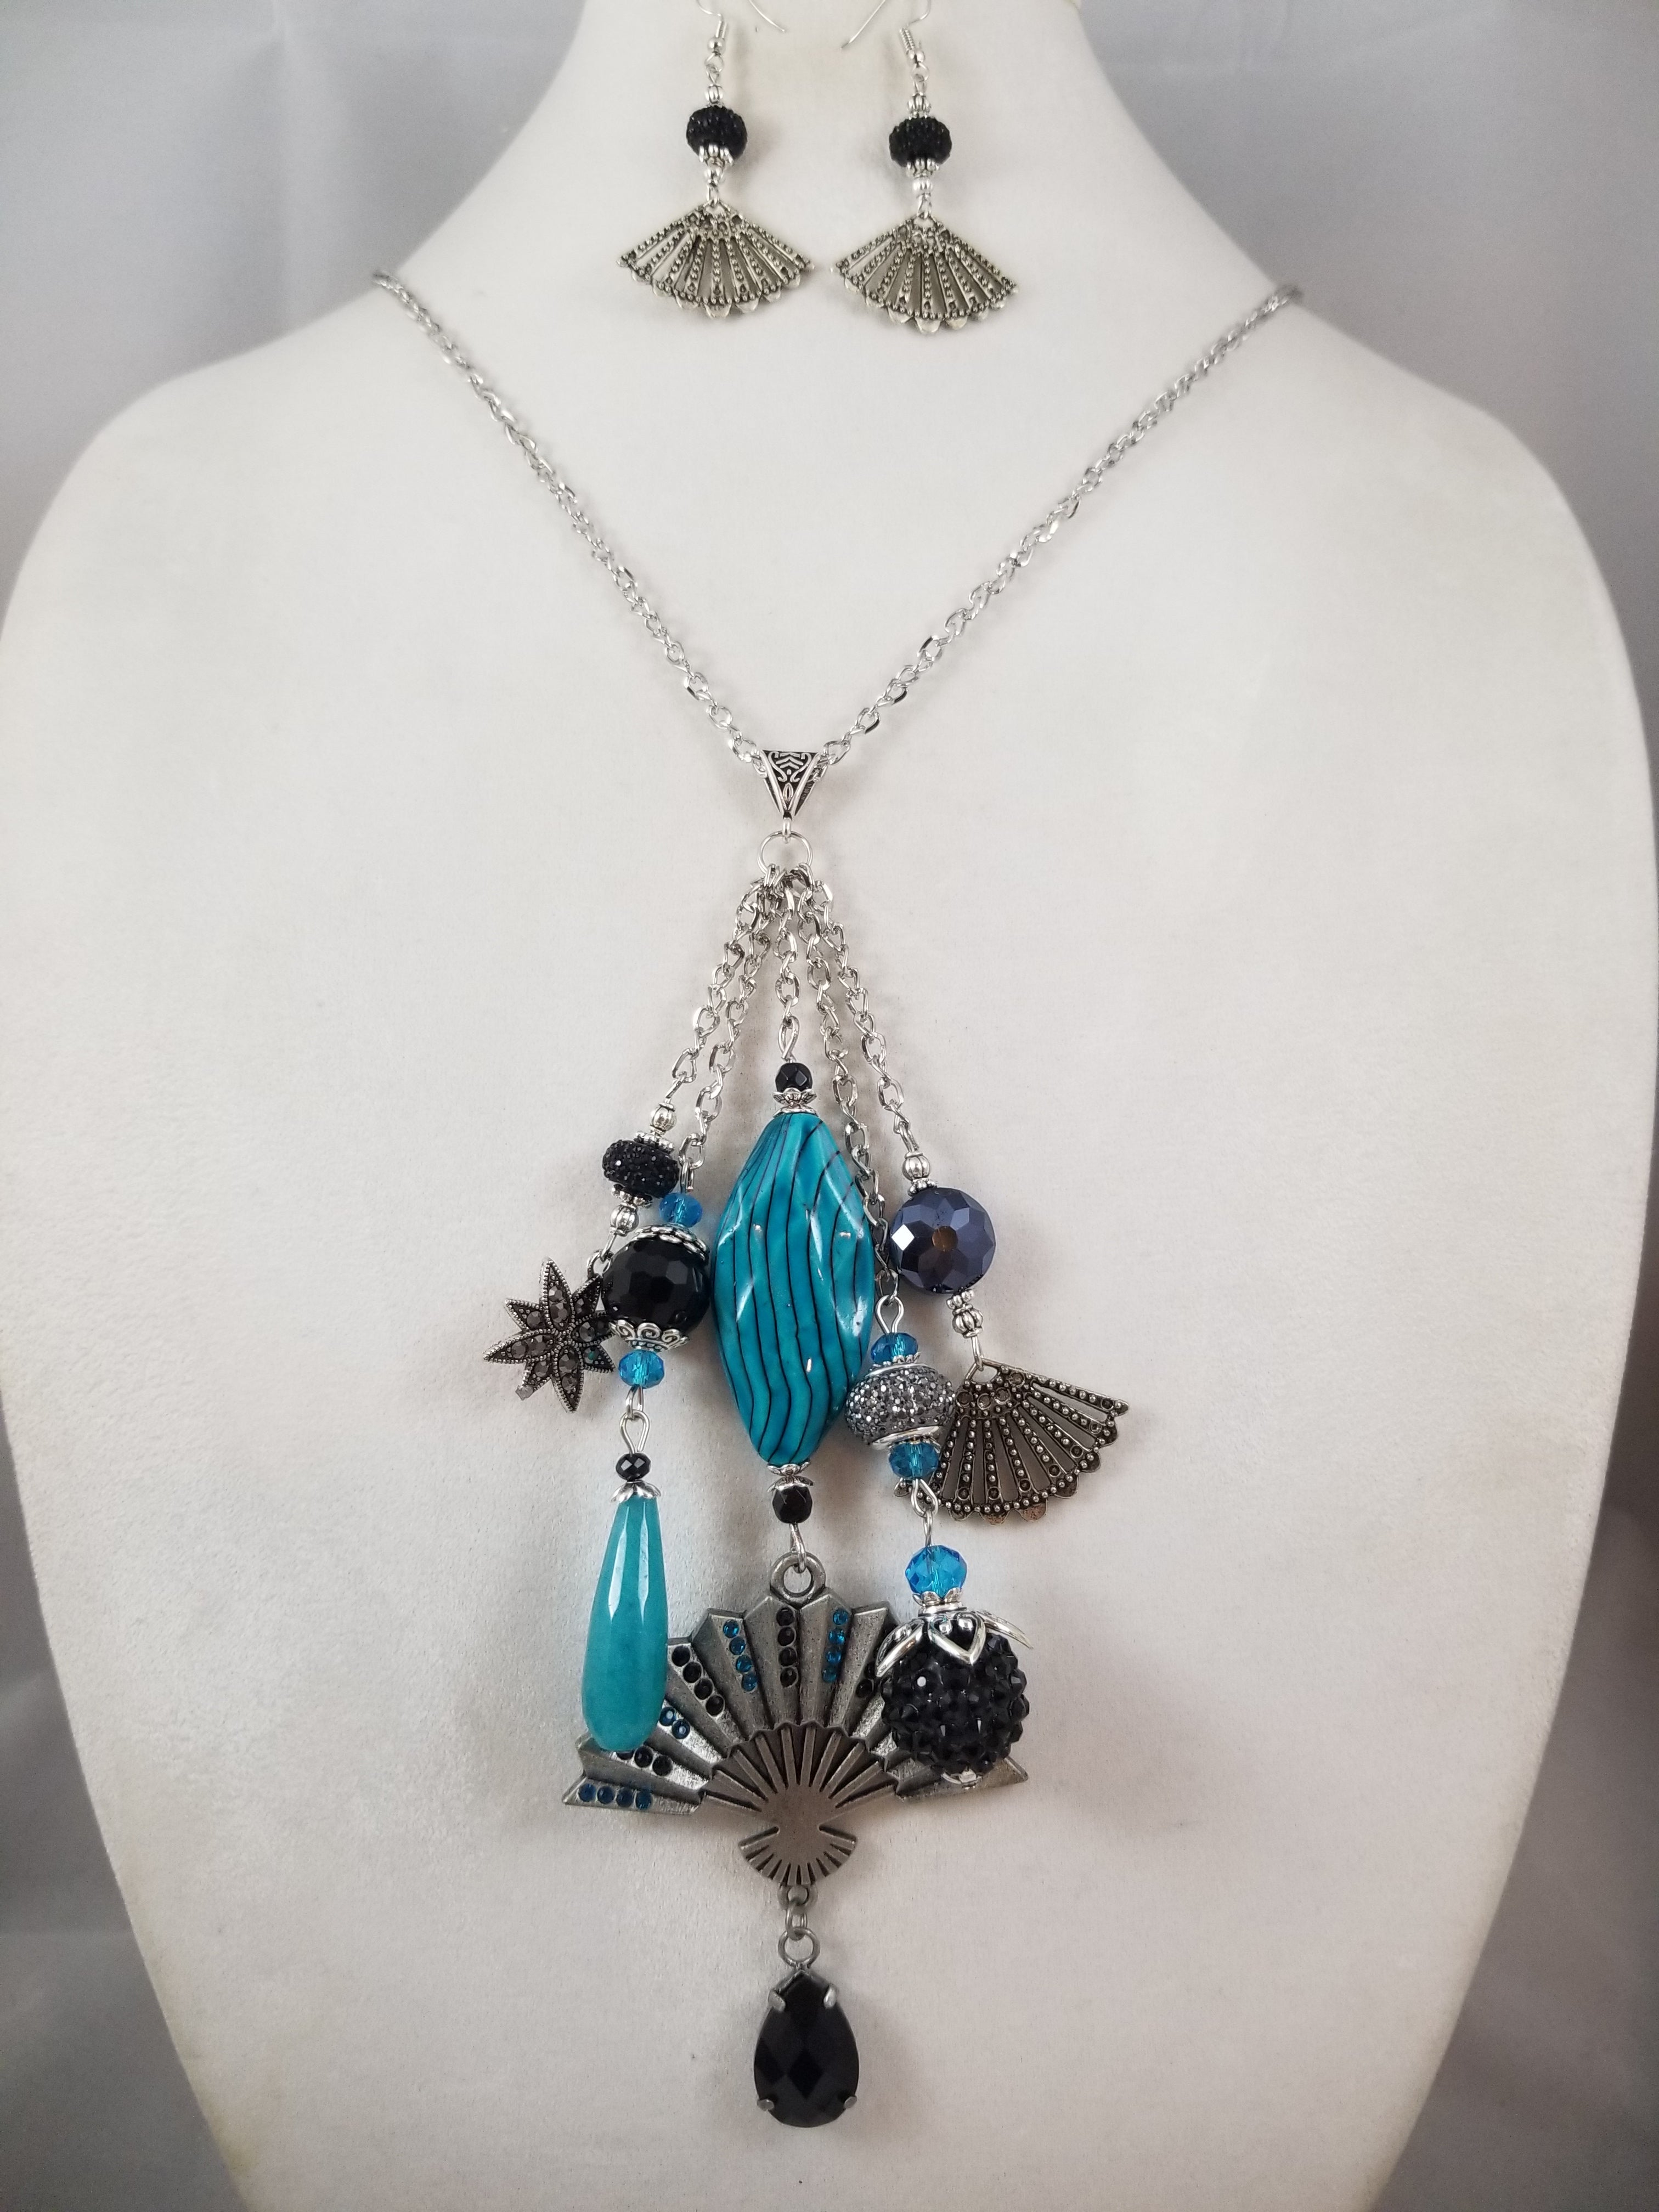 Big Fan Necklace with Earrings